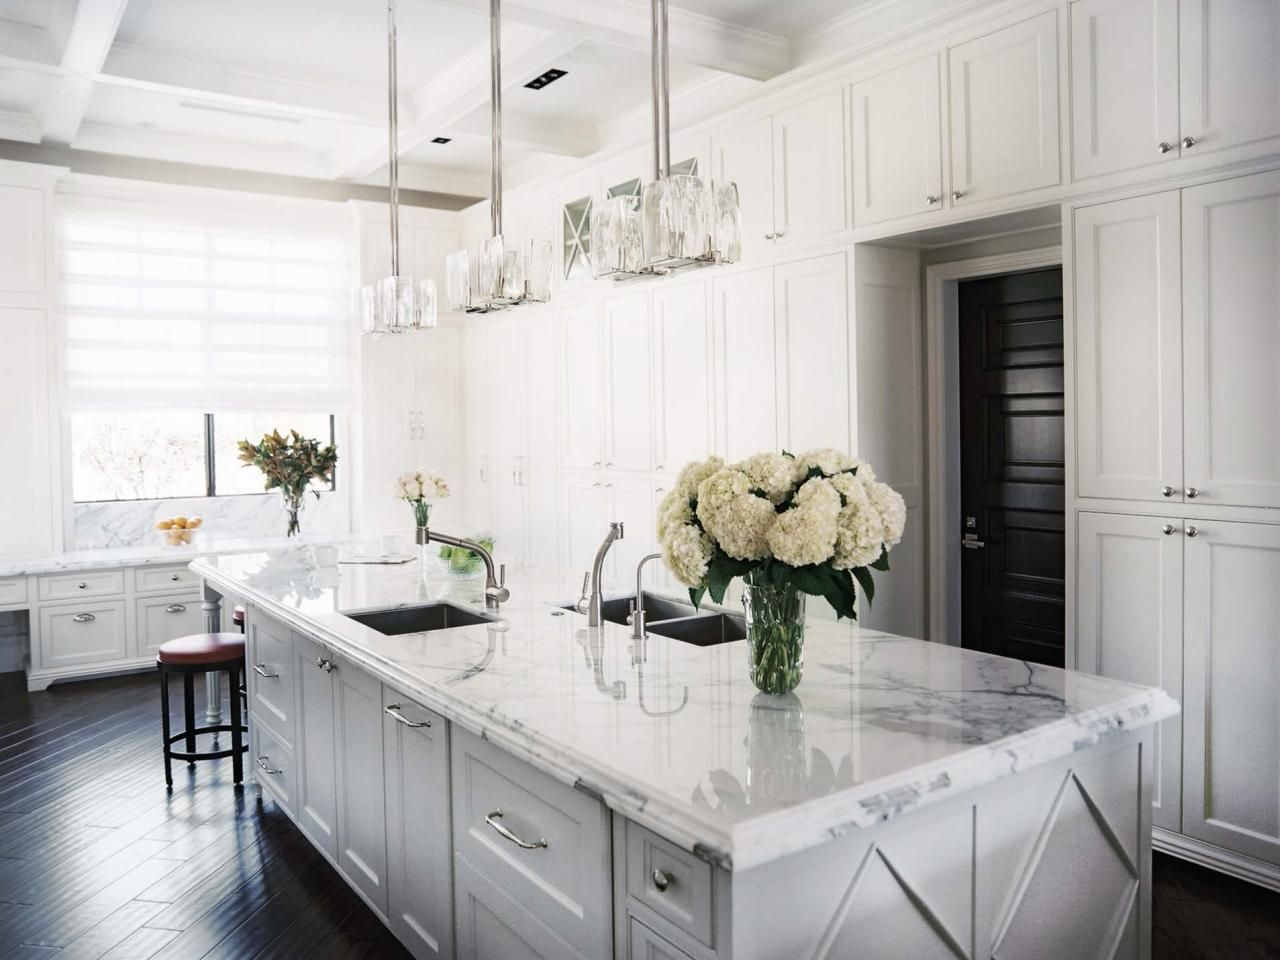 Pictures of Kitchen Cabinets: Ideas & Inspiration From | Island ...